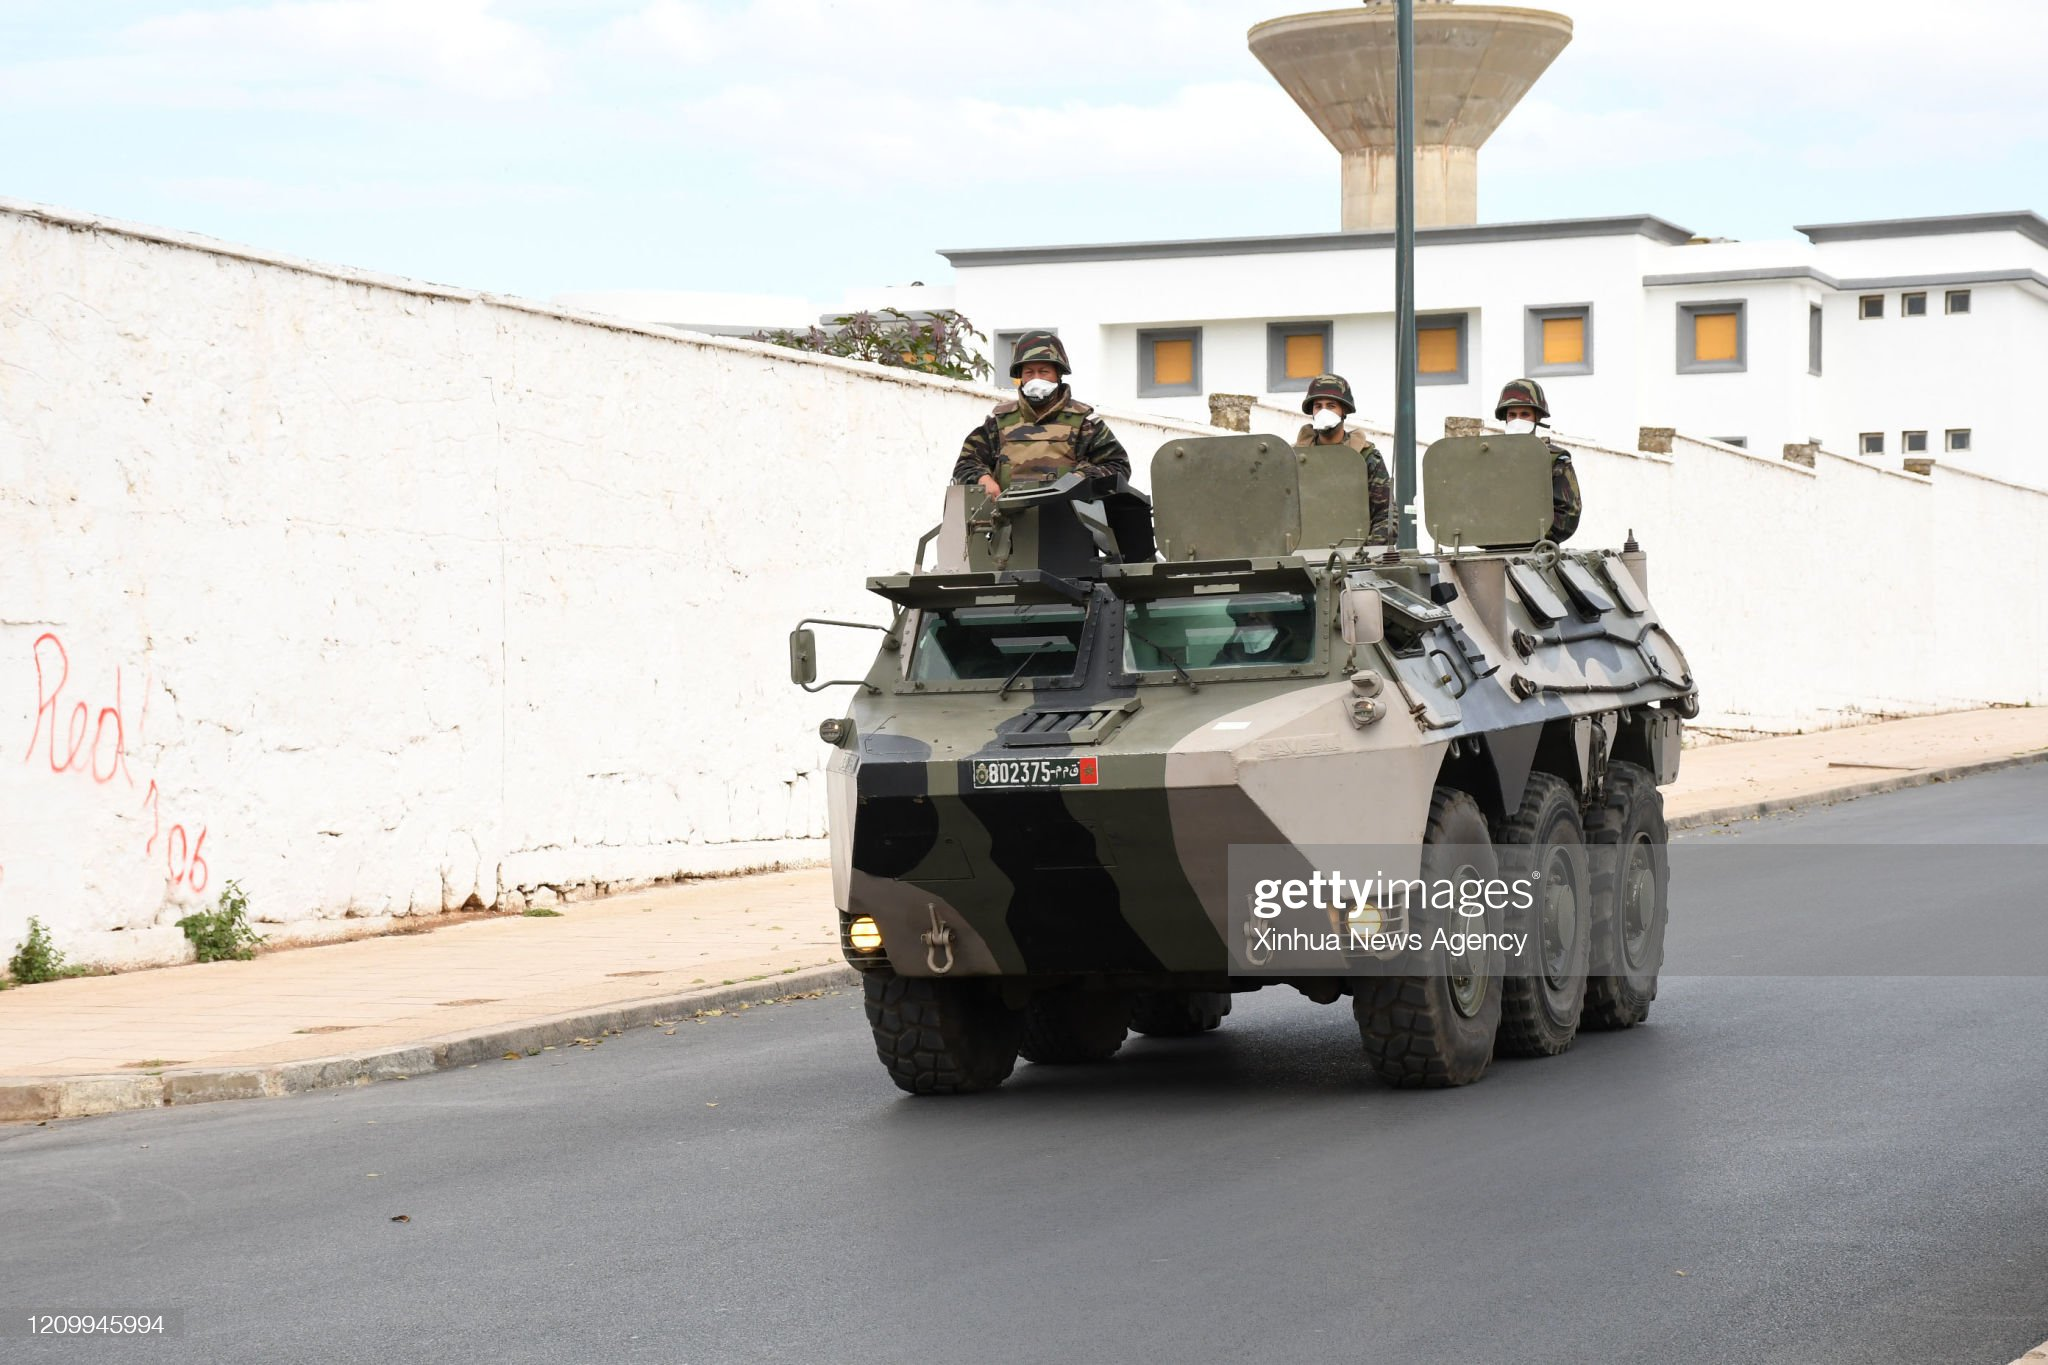 Renault VAB VTT et VCI des Forces Armées Royales - Page 3 April-14-2020-soldiers-wearing-masks-are-seen-on-a-military-vehicle-picture-id1209945994?s=2048x2048